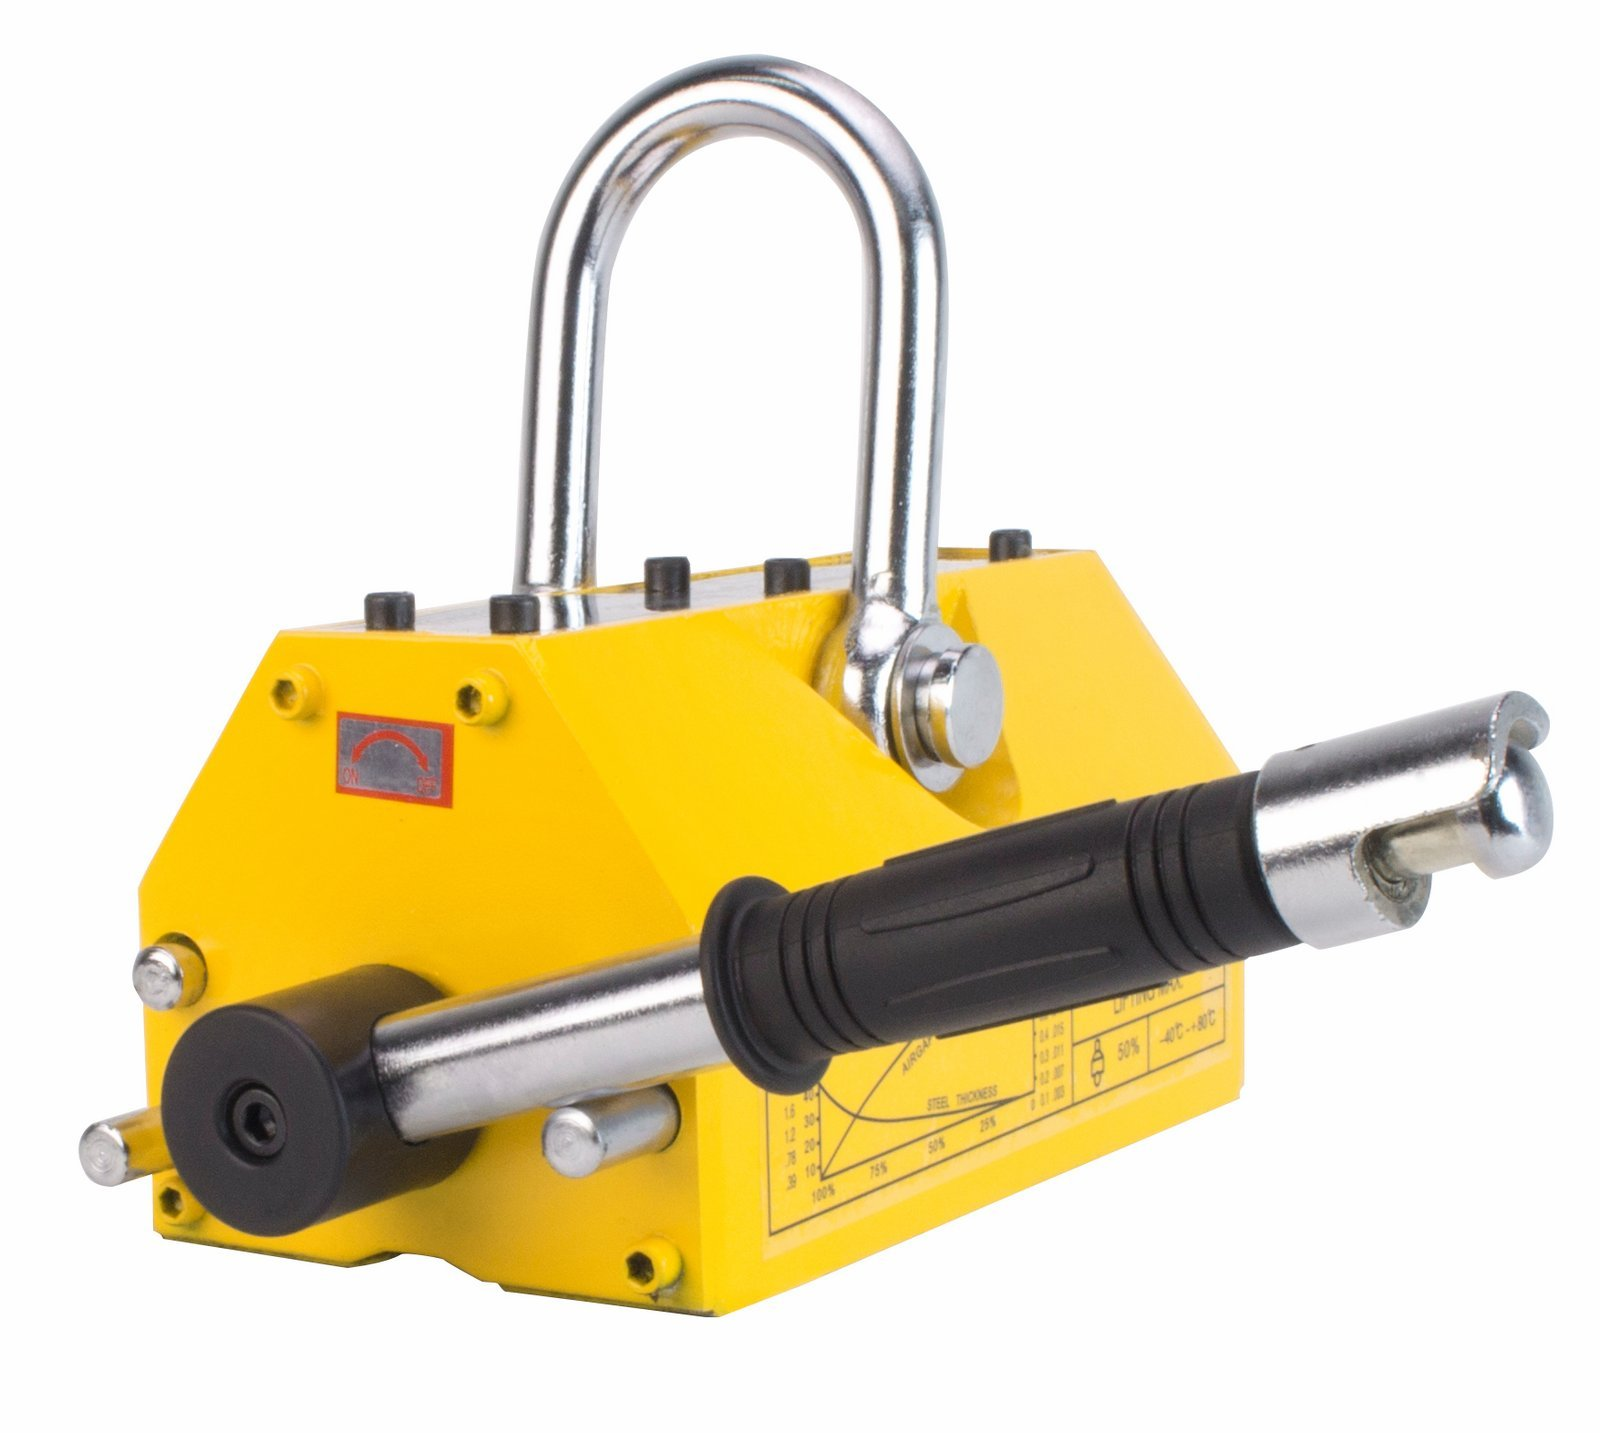 Steel Dragon Tools 1320 LBS 600 KG Magnetic Metal Lifting Hoist Shop Crane Neodymium Magnet